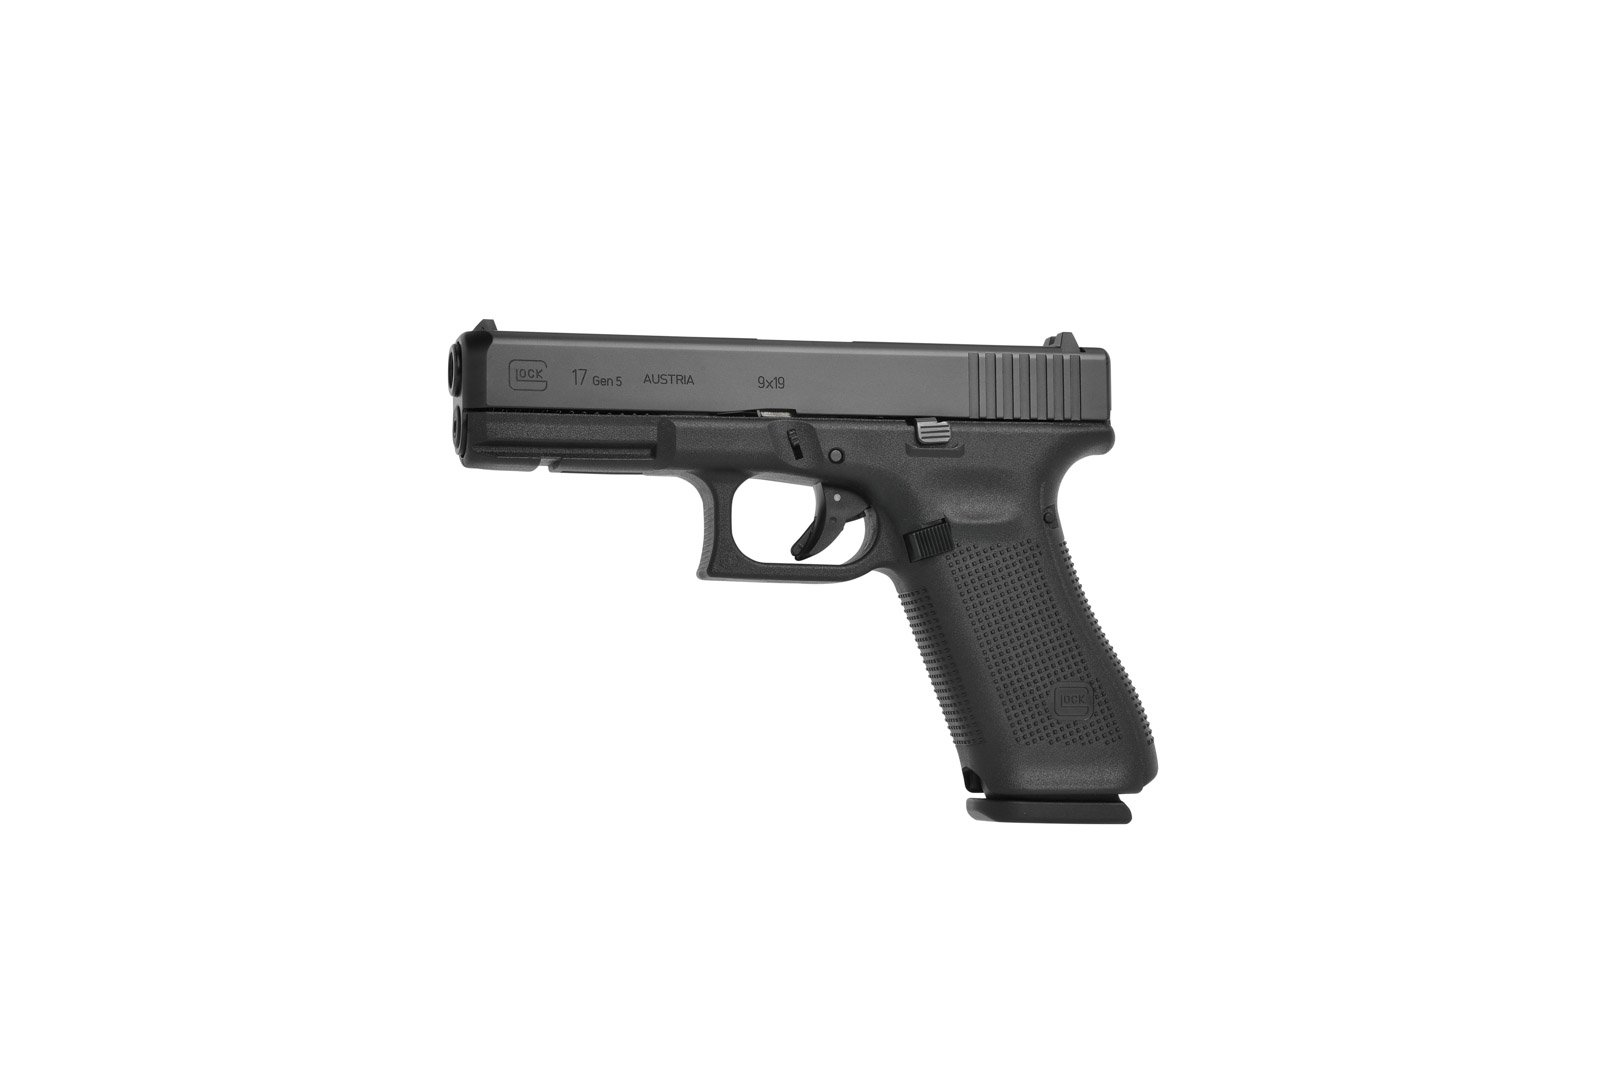 Glock 17 Gen 5 - 9mm (Fixed Sights)